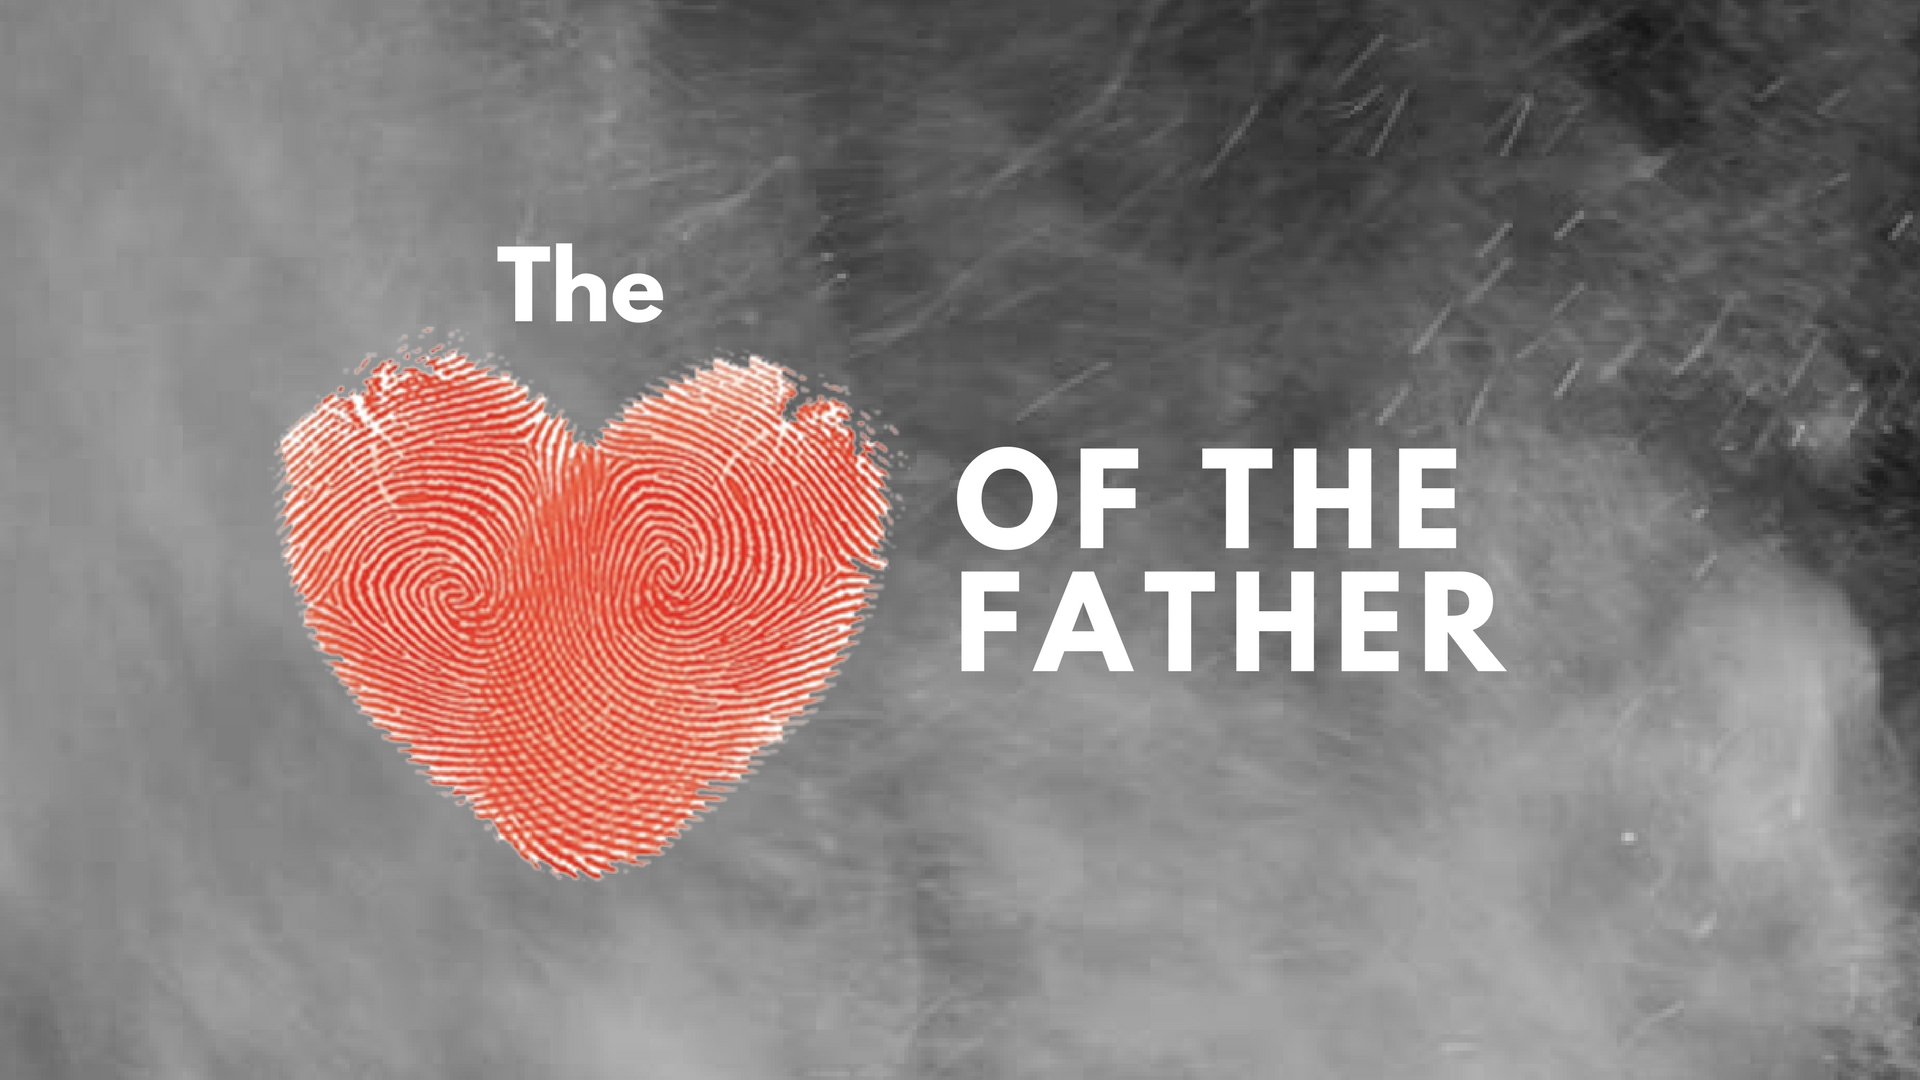 The-Heart-of-the-Father.jpg